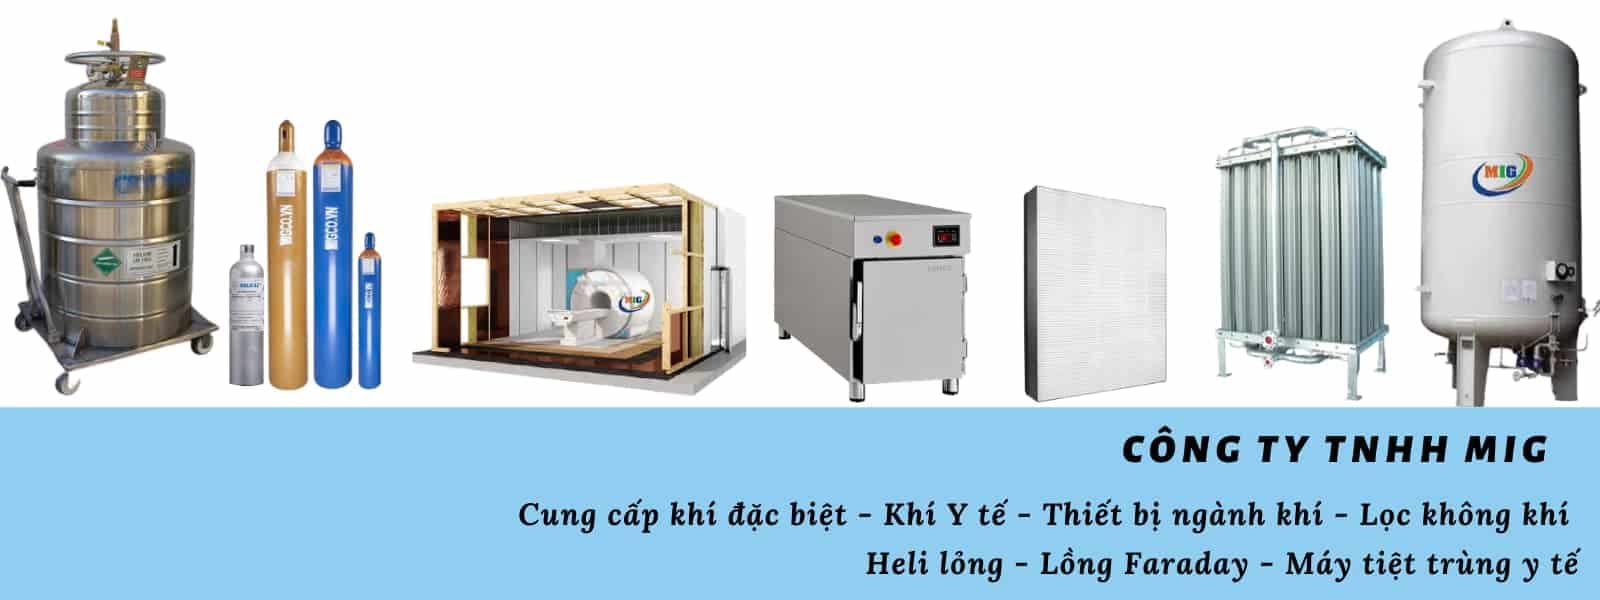 cong-ty-khi-cong-nghiep-mig